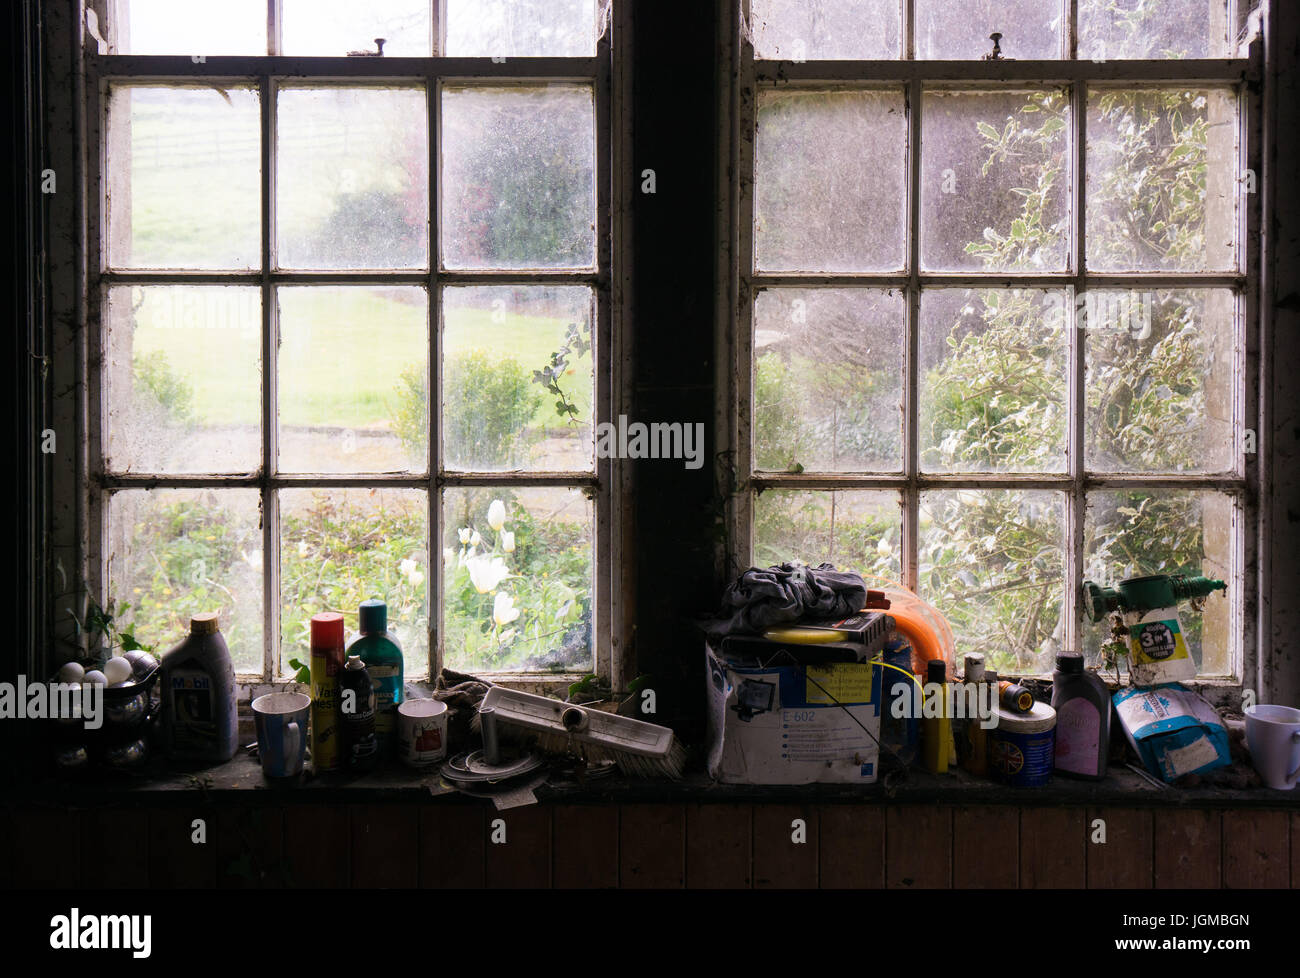 An old and dirty window with a feeling of neglect and melancholy - Stock Image